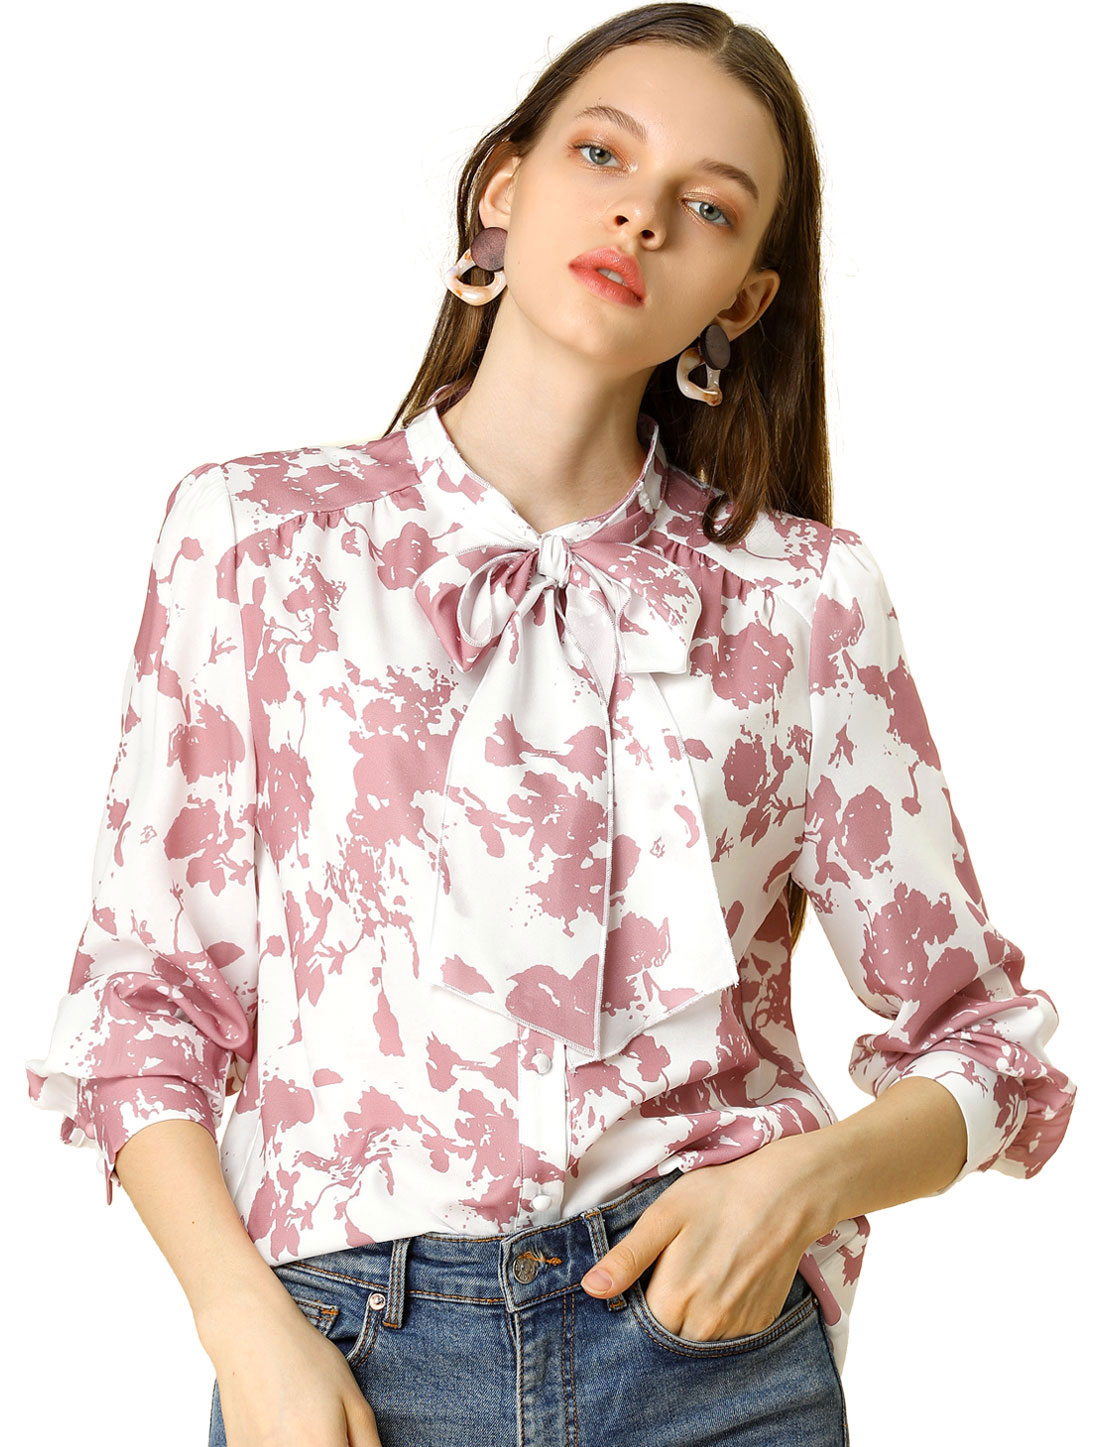 Allegra K Women's Floral Ruffle Sleeves Button Up Blouse Tie Neck Shirt White M